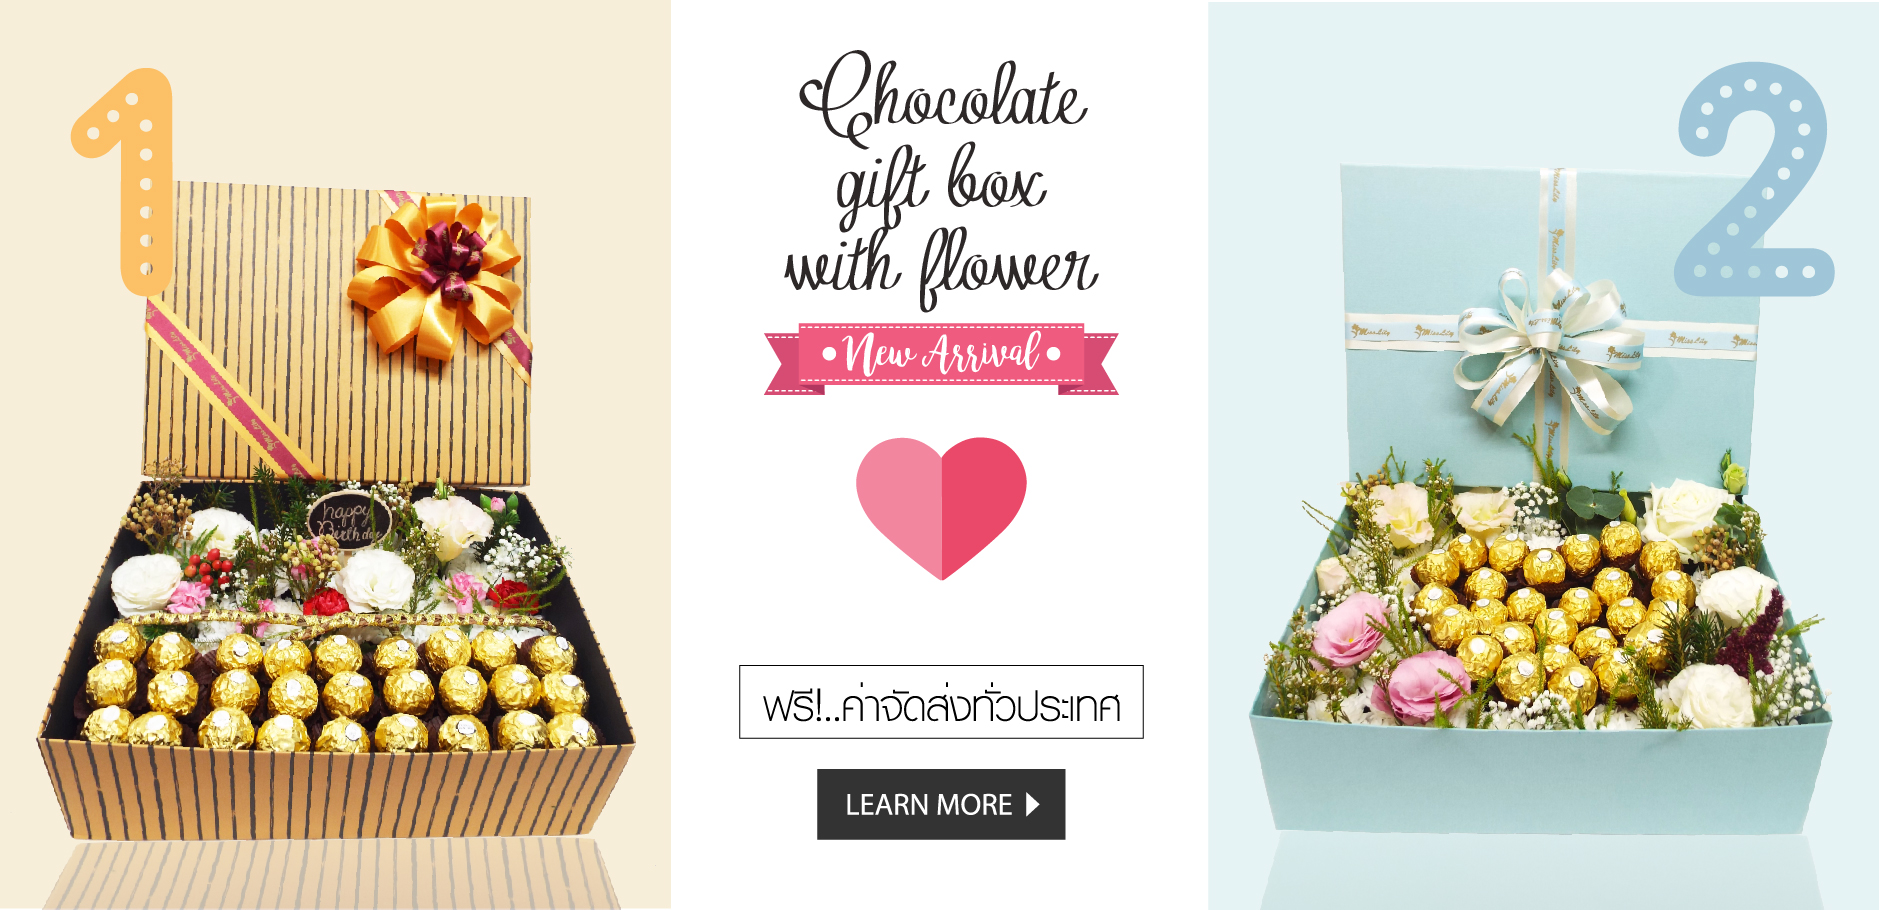 Chocolate gift box with flowers